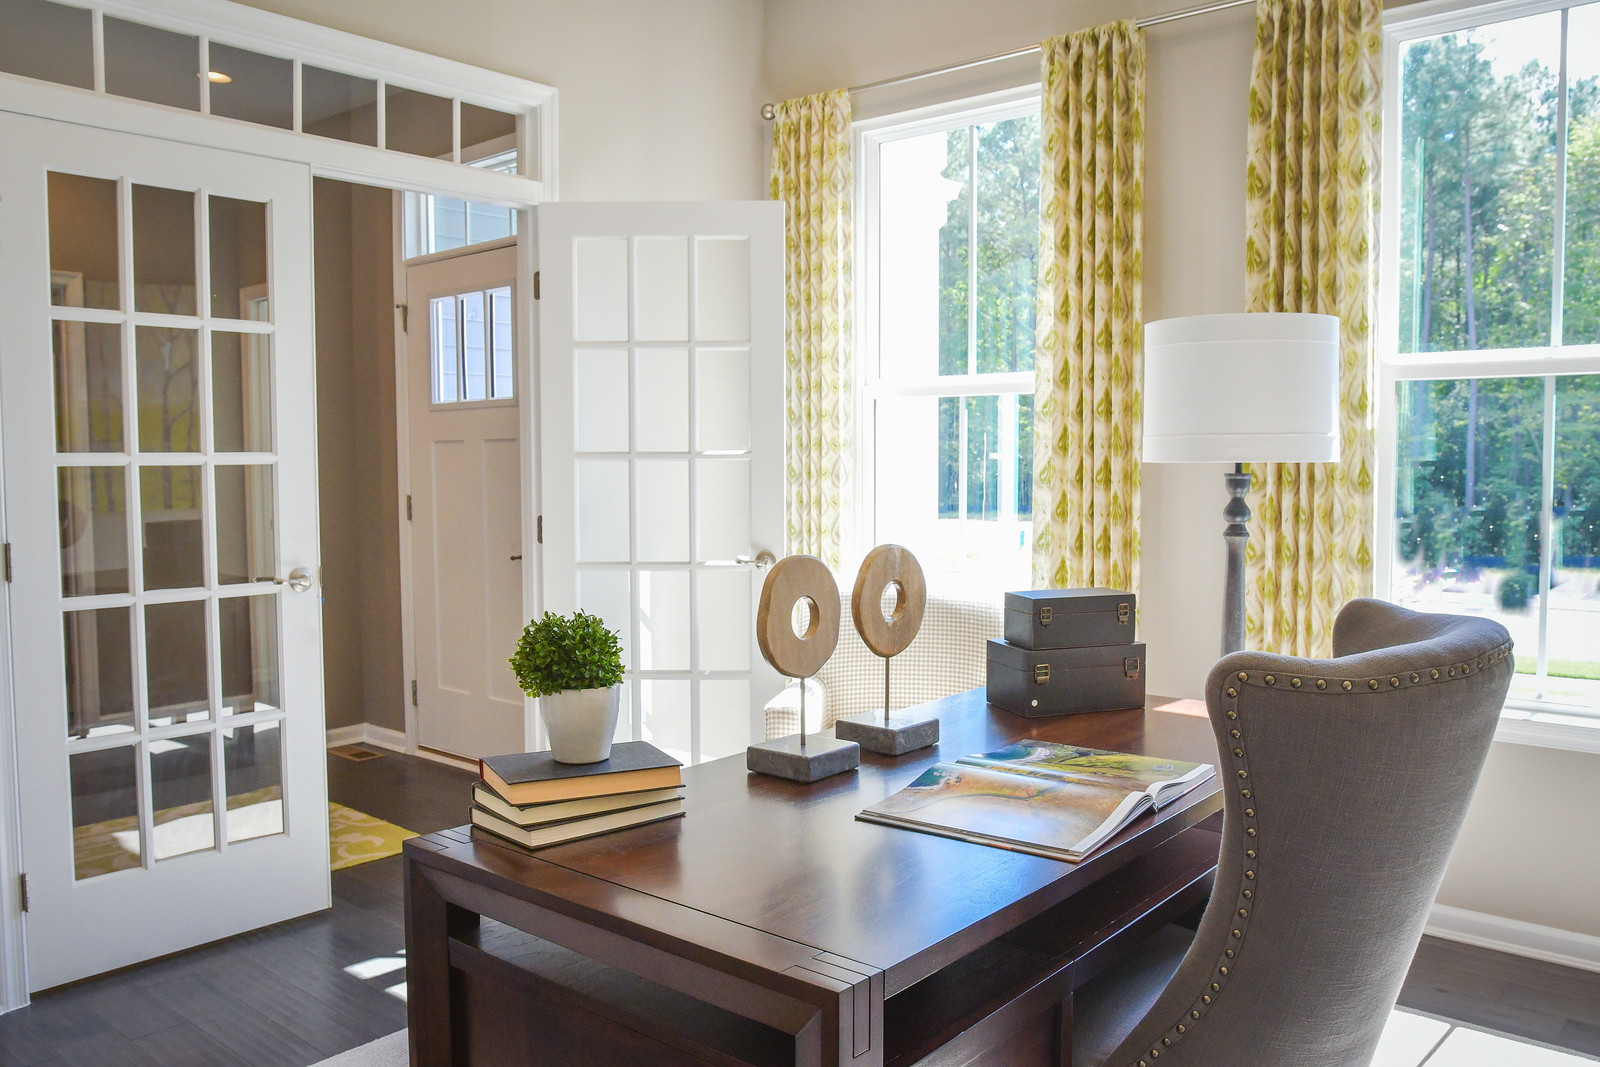 Want a home office, formal dining room or extra bedroom?  These villa home designs have flex spaces so you can customize how you want to use the space.